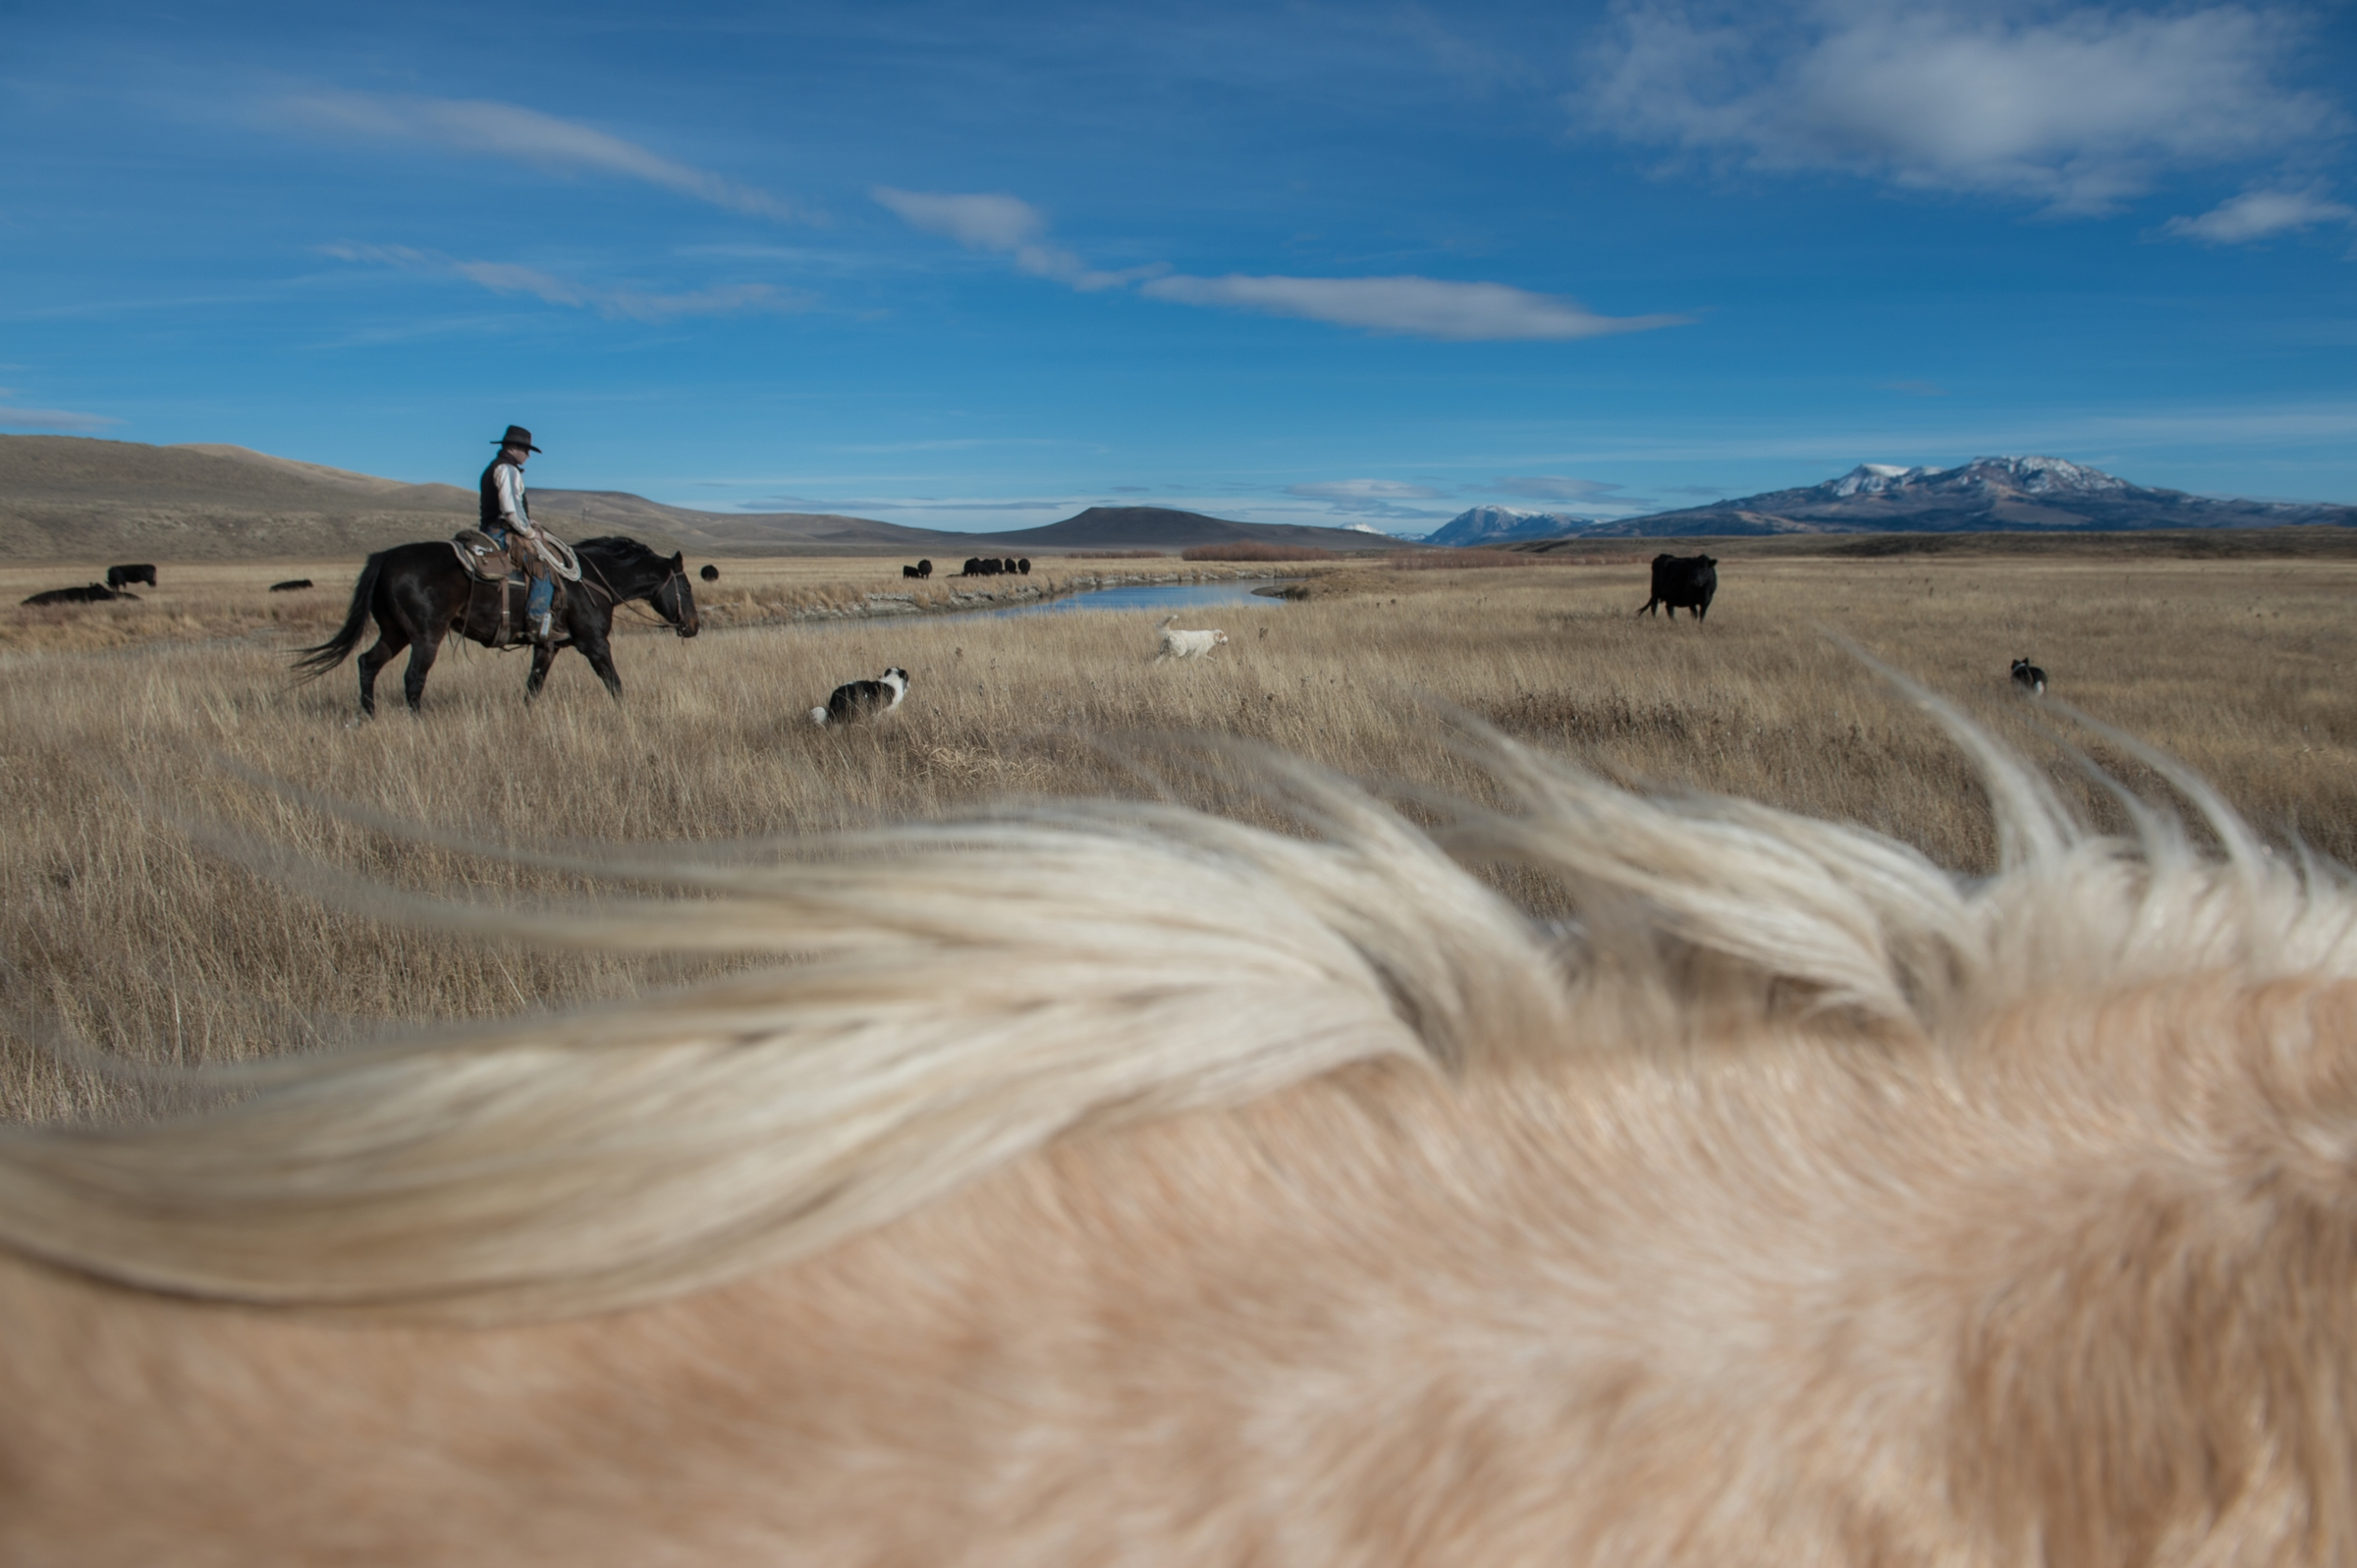 Stephen Becklund  and his dogs, Max and Ellie, herd cattle at the J Bar L ranch on a sunny November day in the Centennial Valley of southern Montana. 2012   © Ami Vitale